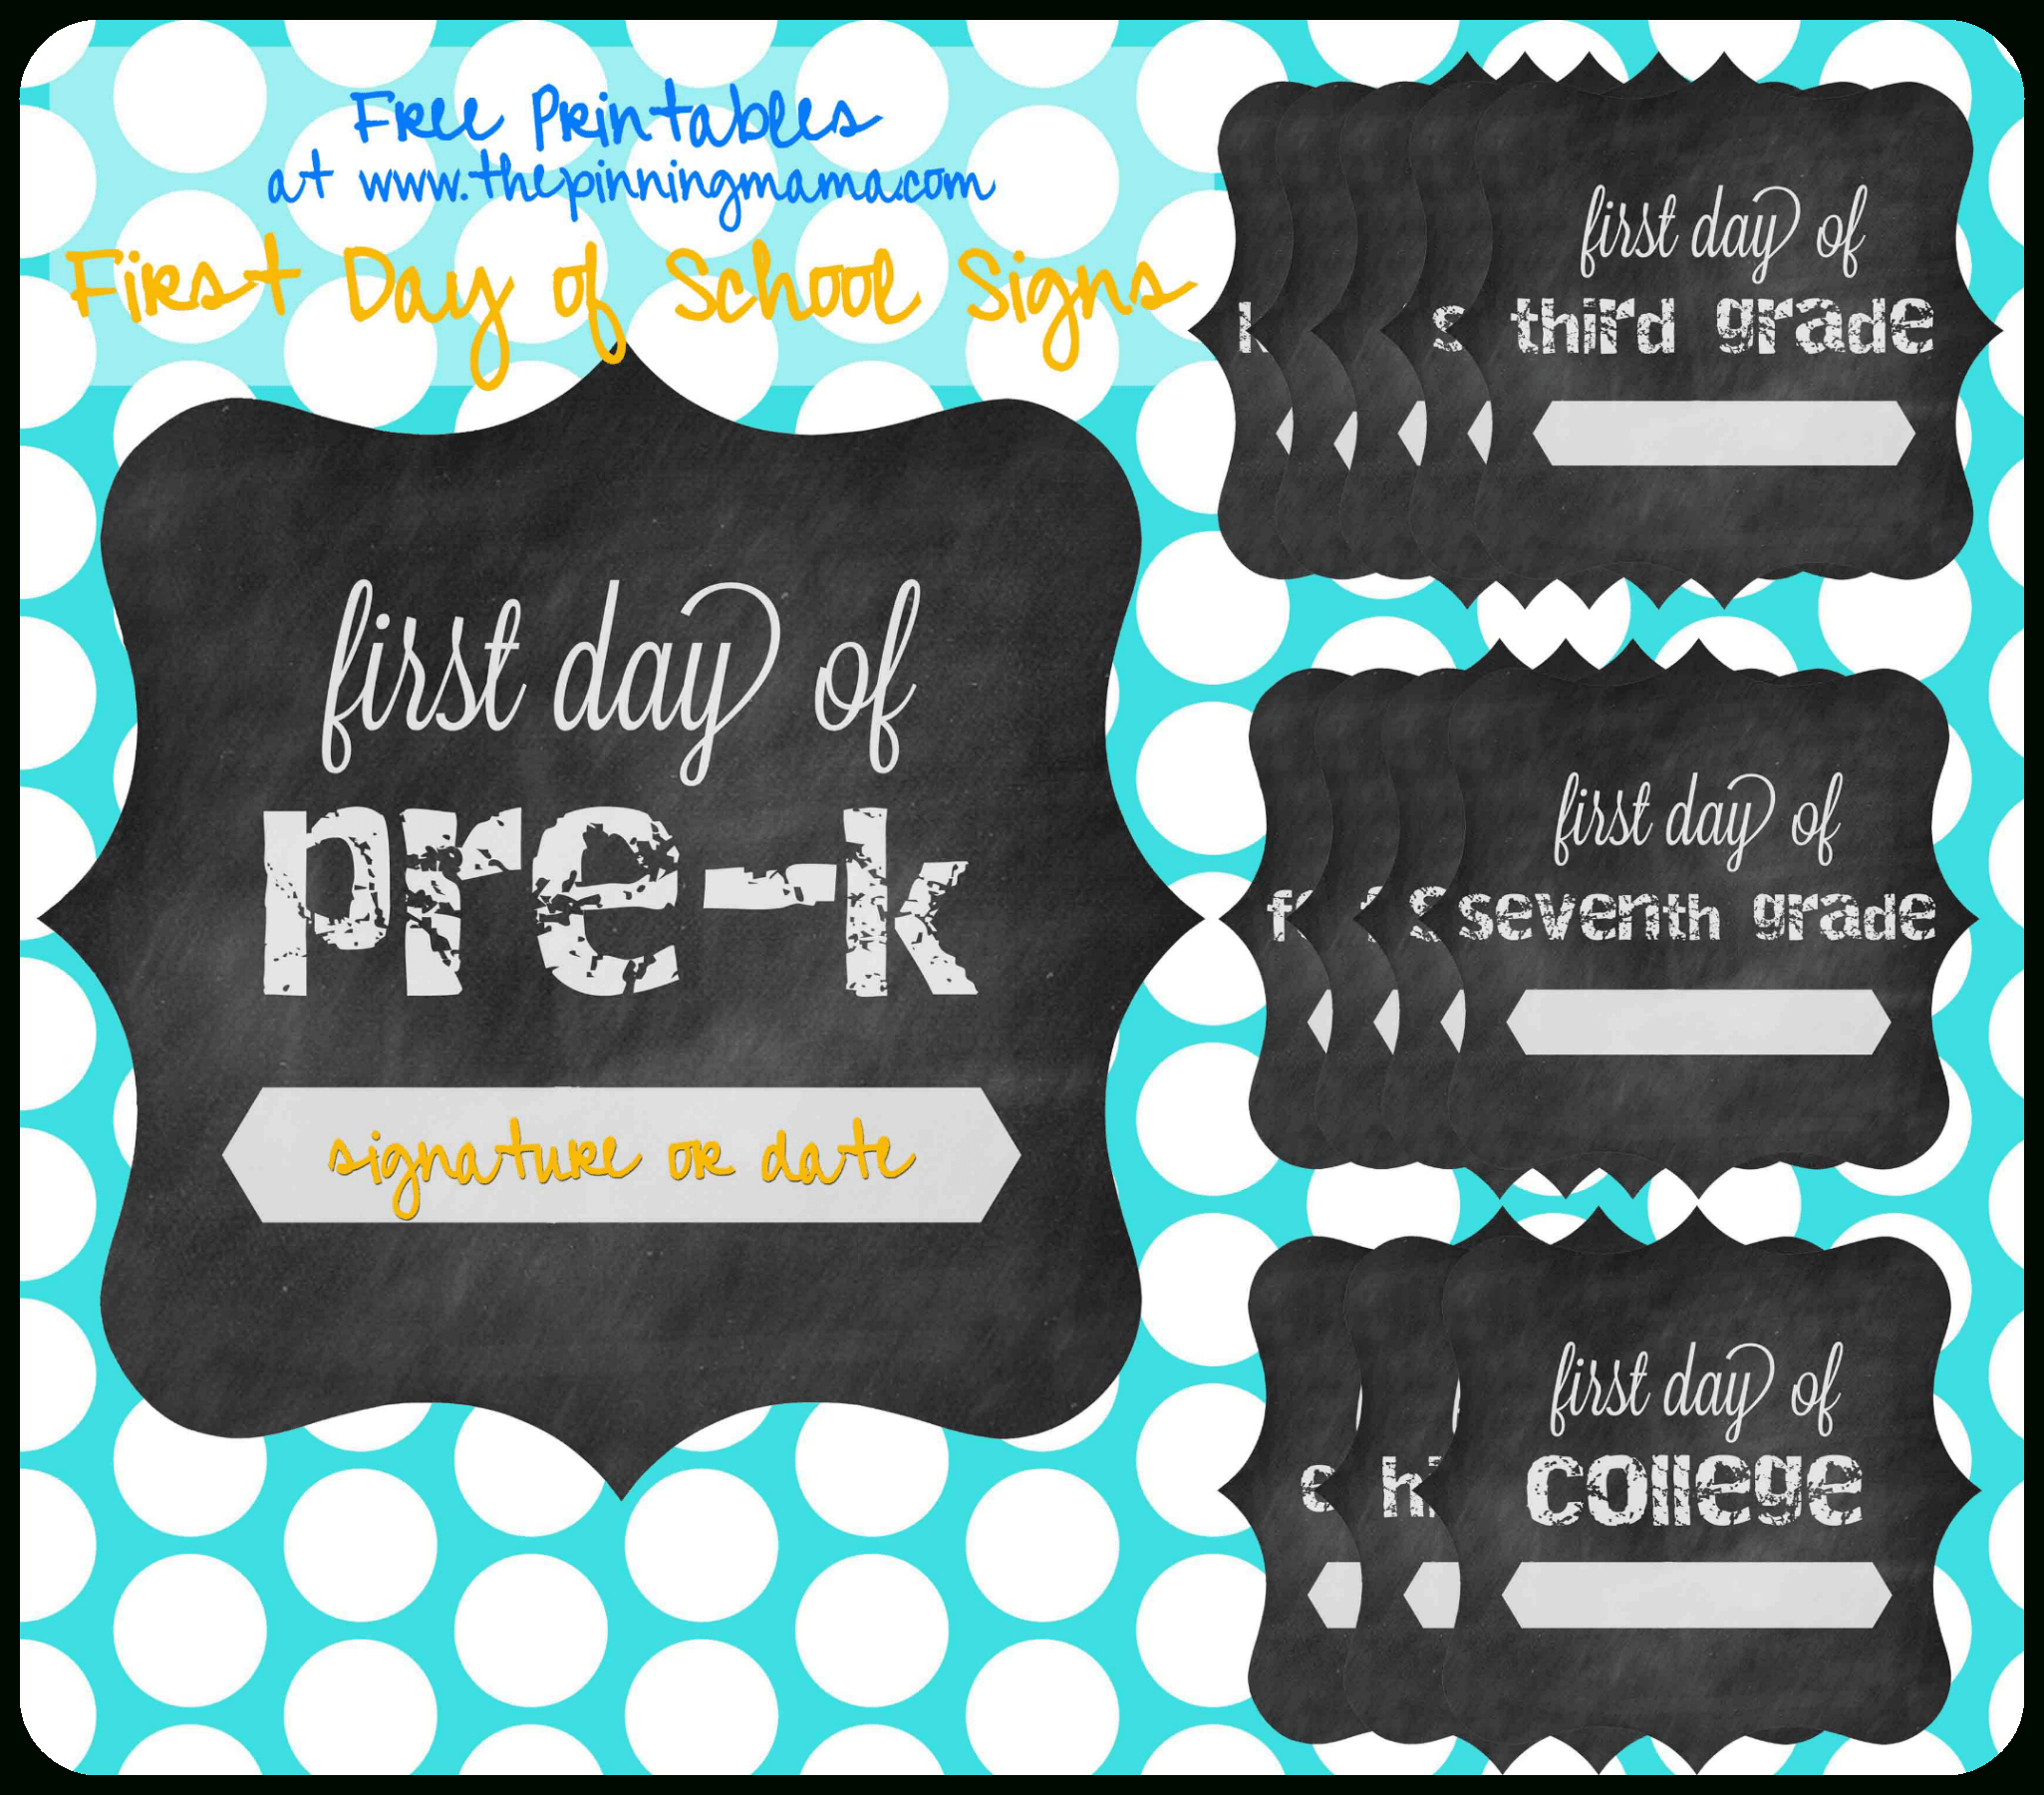 Free Printable} First Day Of School Chalkboard Sign • The Pinning Mama - First Day Of Kindergarten Sign Free Printable